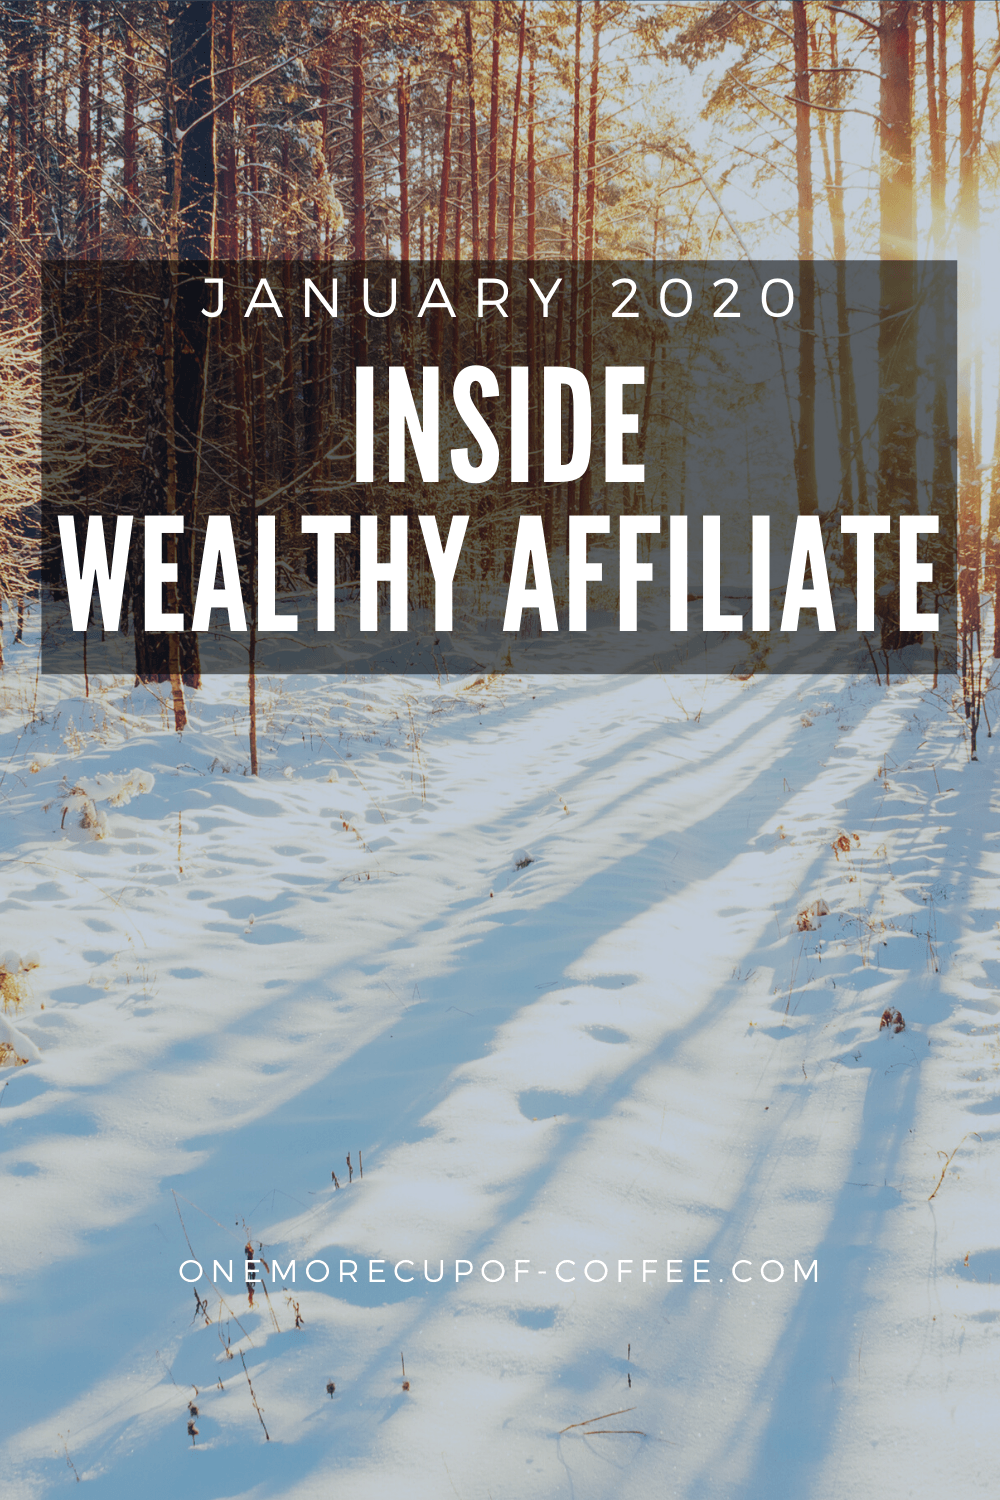 January 2020 wealthy affiliate